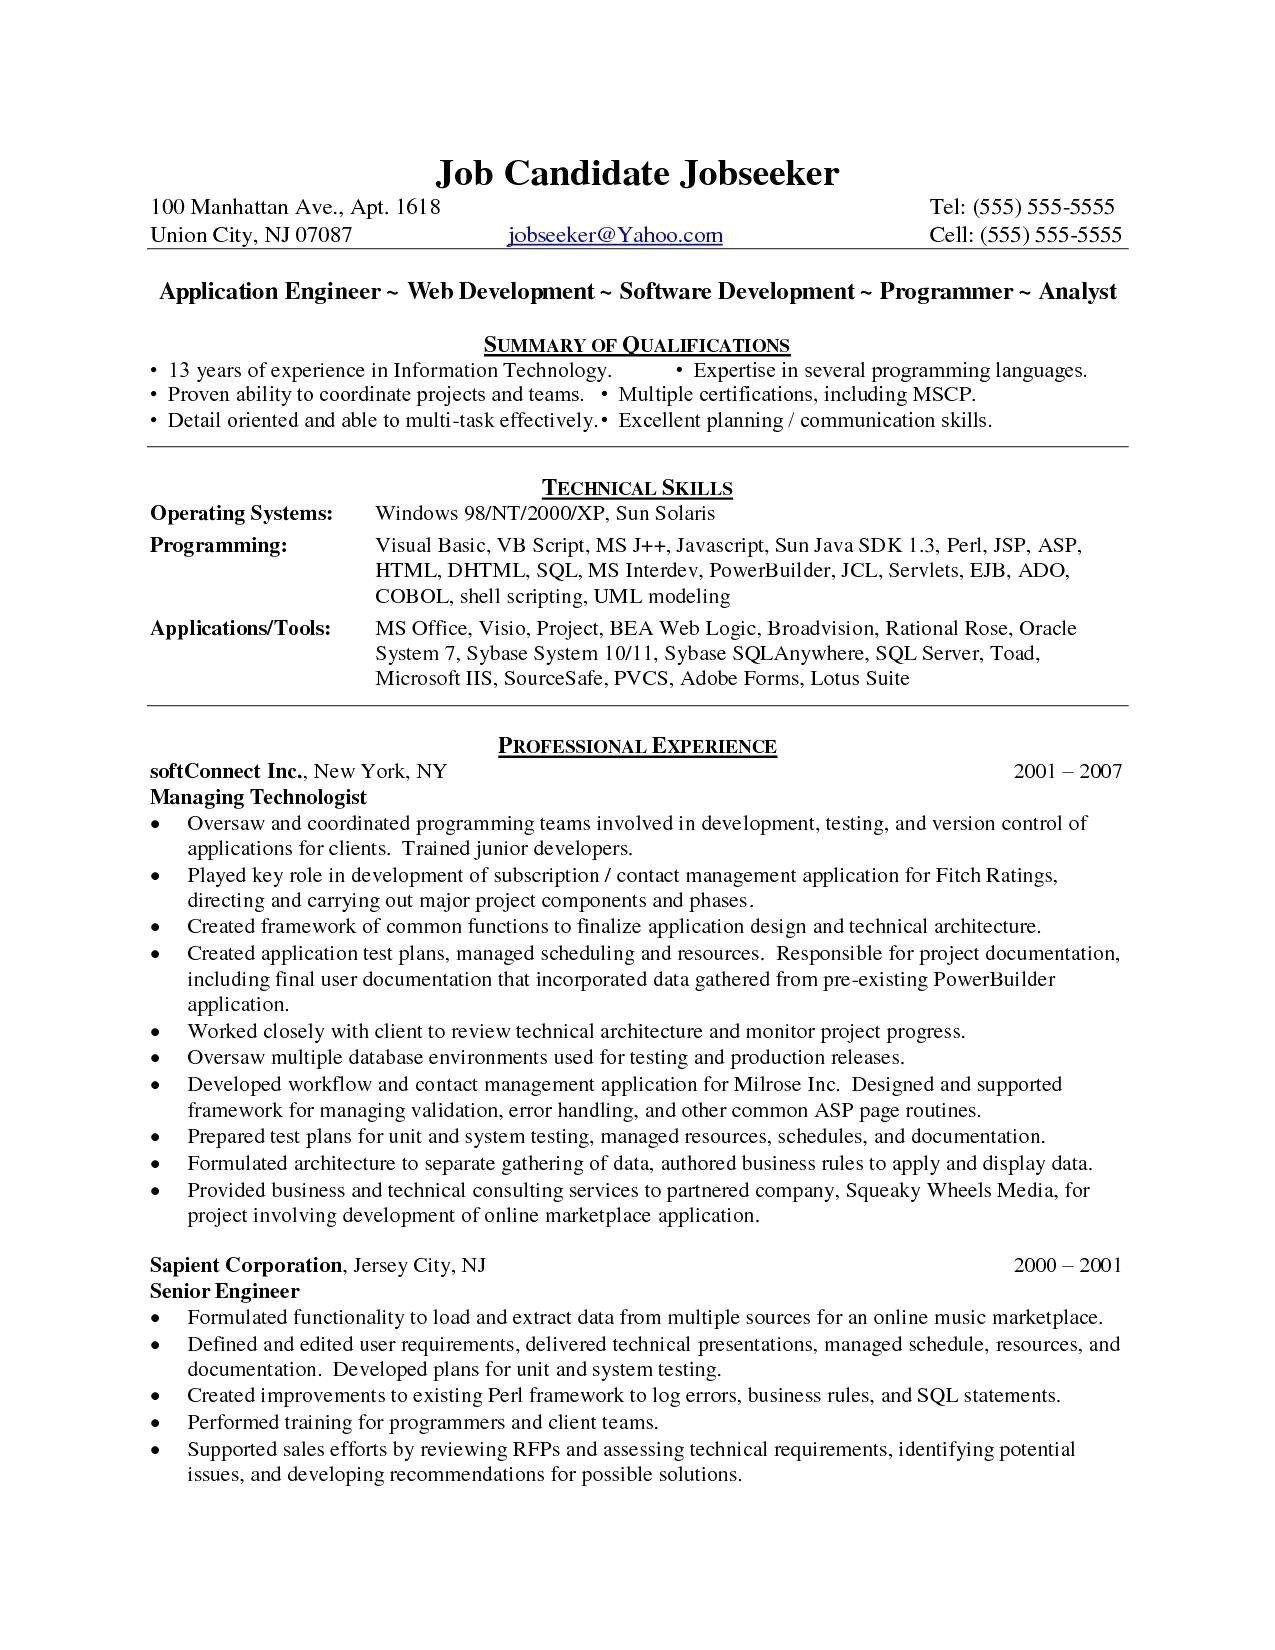 testing resume sample for 3 years experience